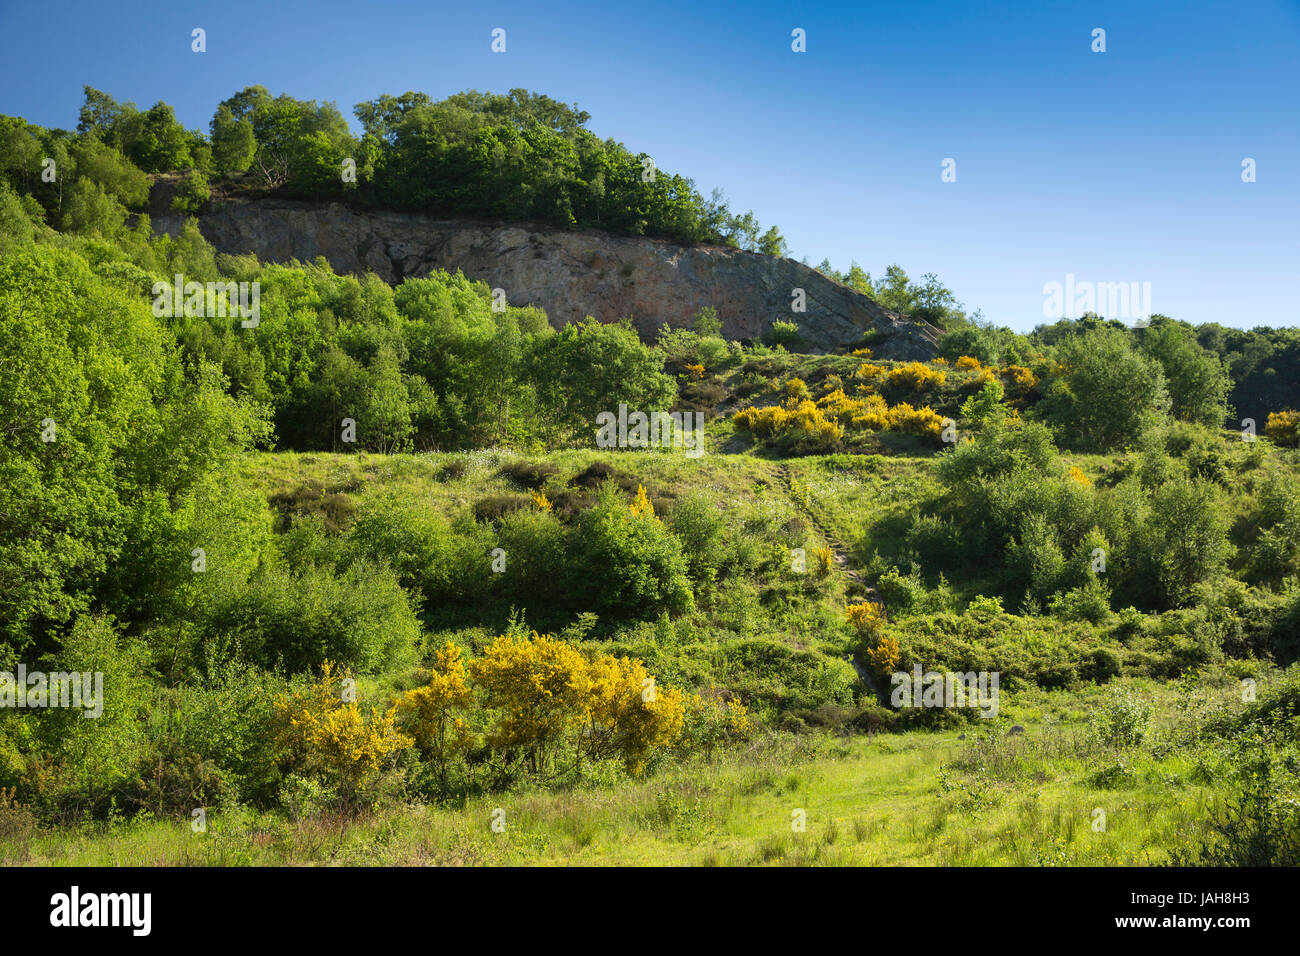 UK, England, Shropshire, The Wrekin, Ercall Wood Quarry, The Unconformity, joint of sedimentary and igneous rocks - Stock Image